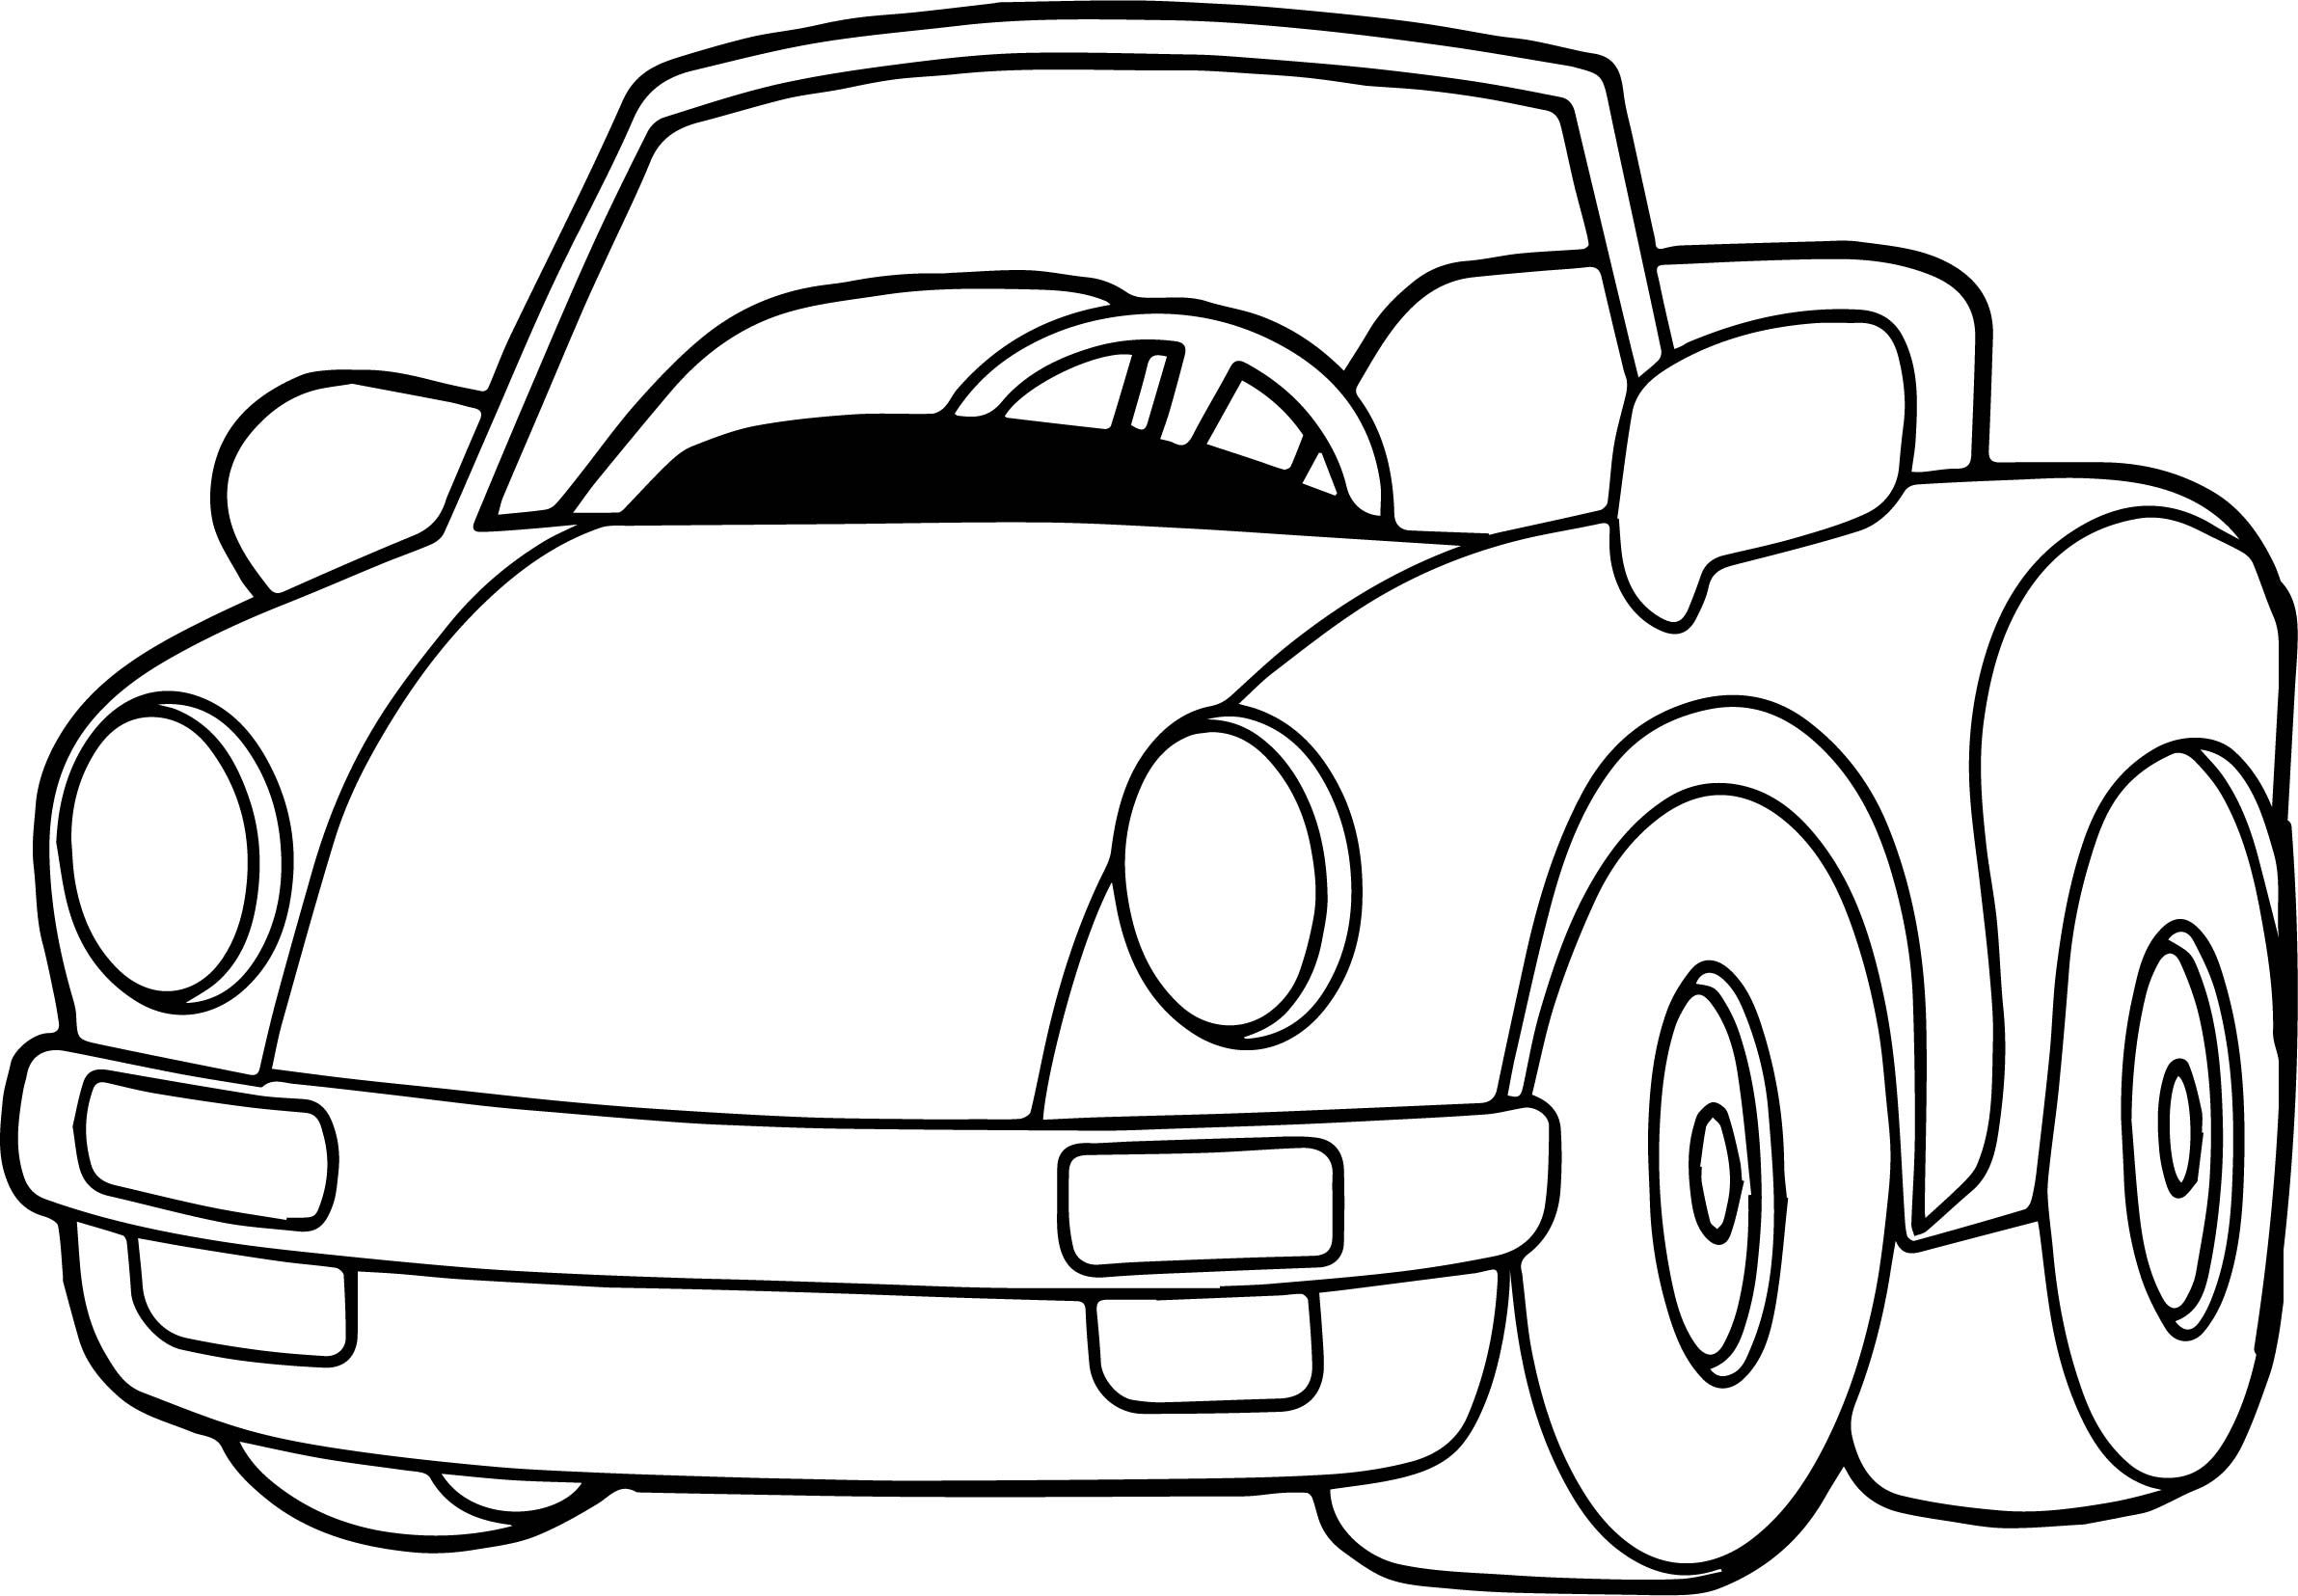 coloring toy car car coloring pages free download on clipartmag car toy coloring